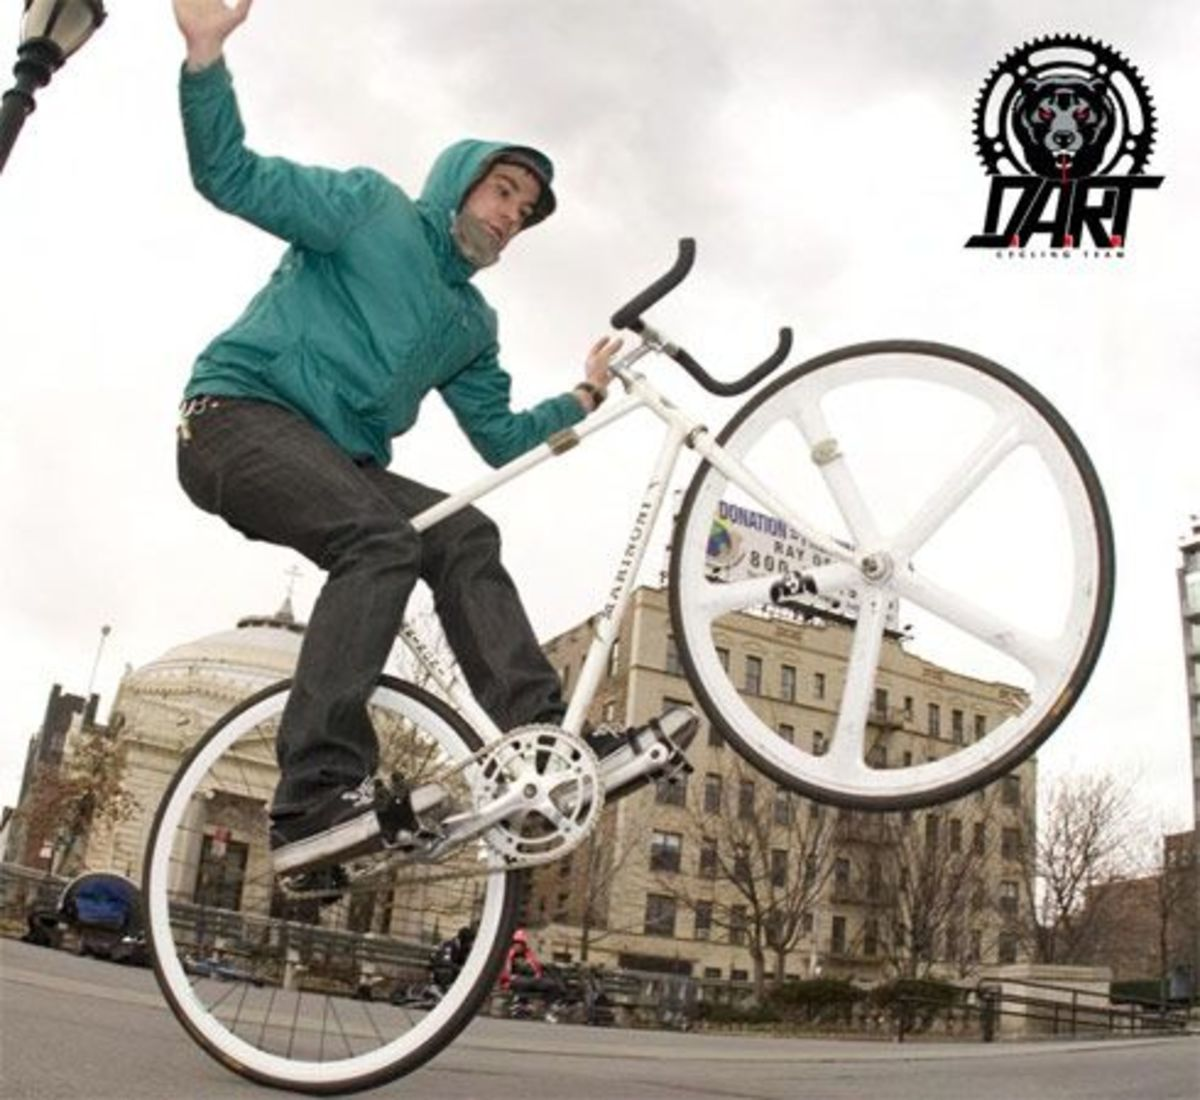 Mshka D.A.R.T. Cycling Team